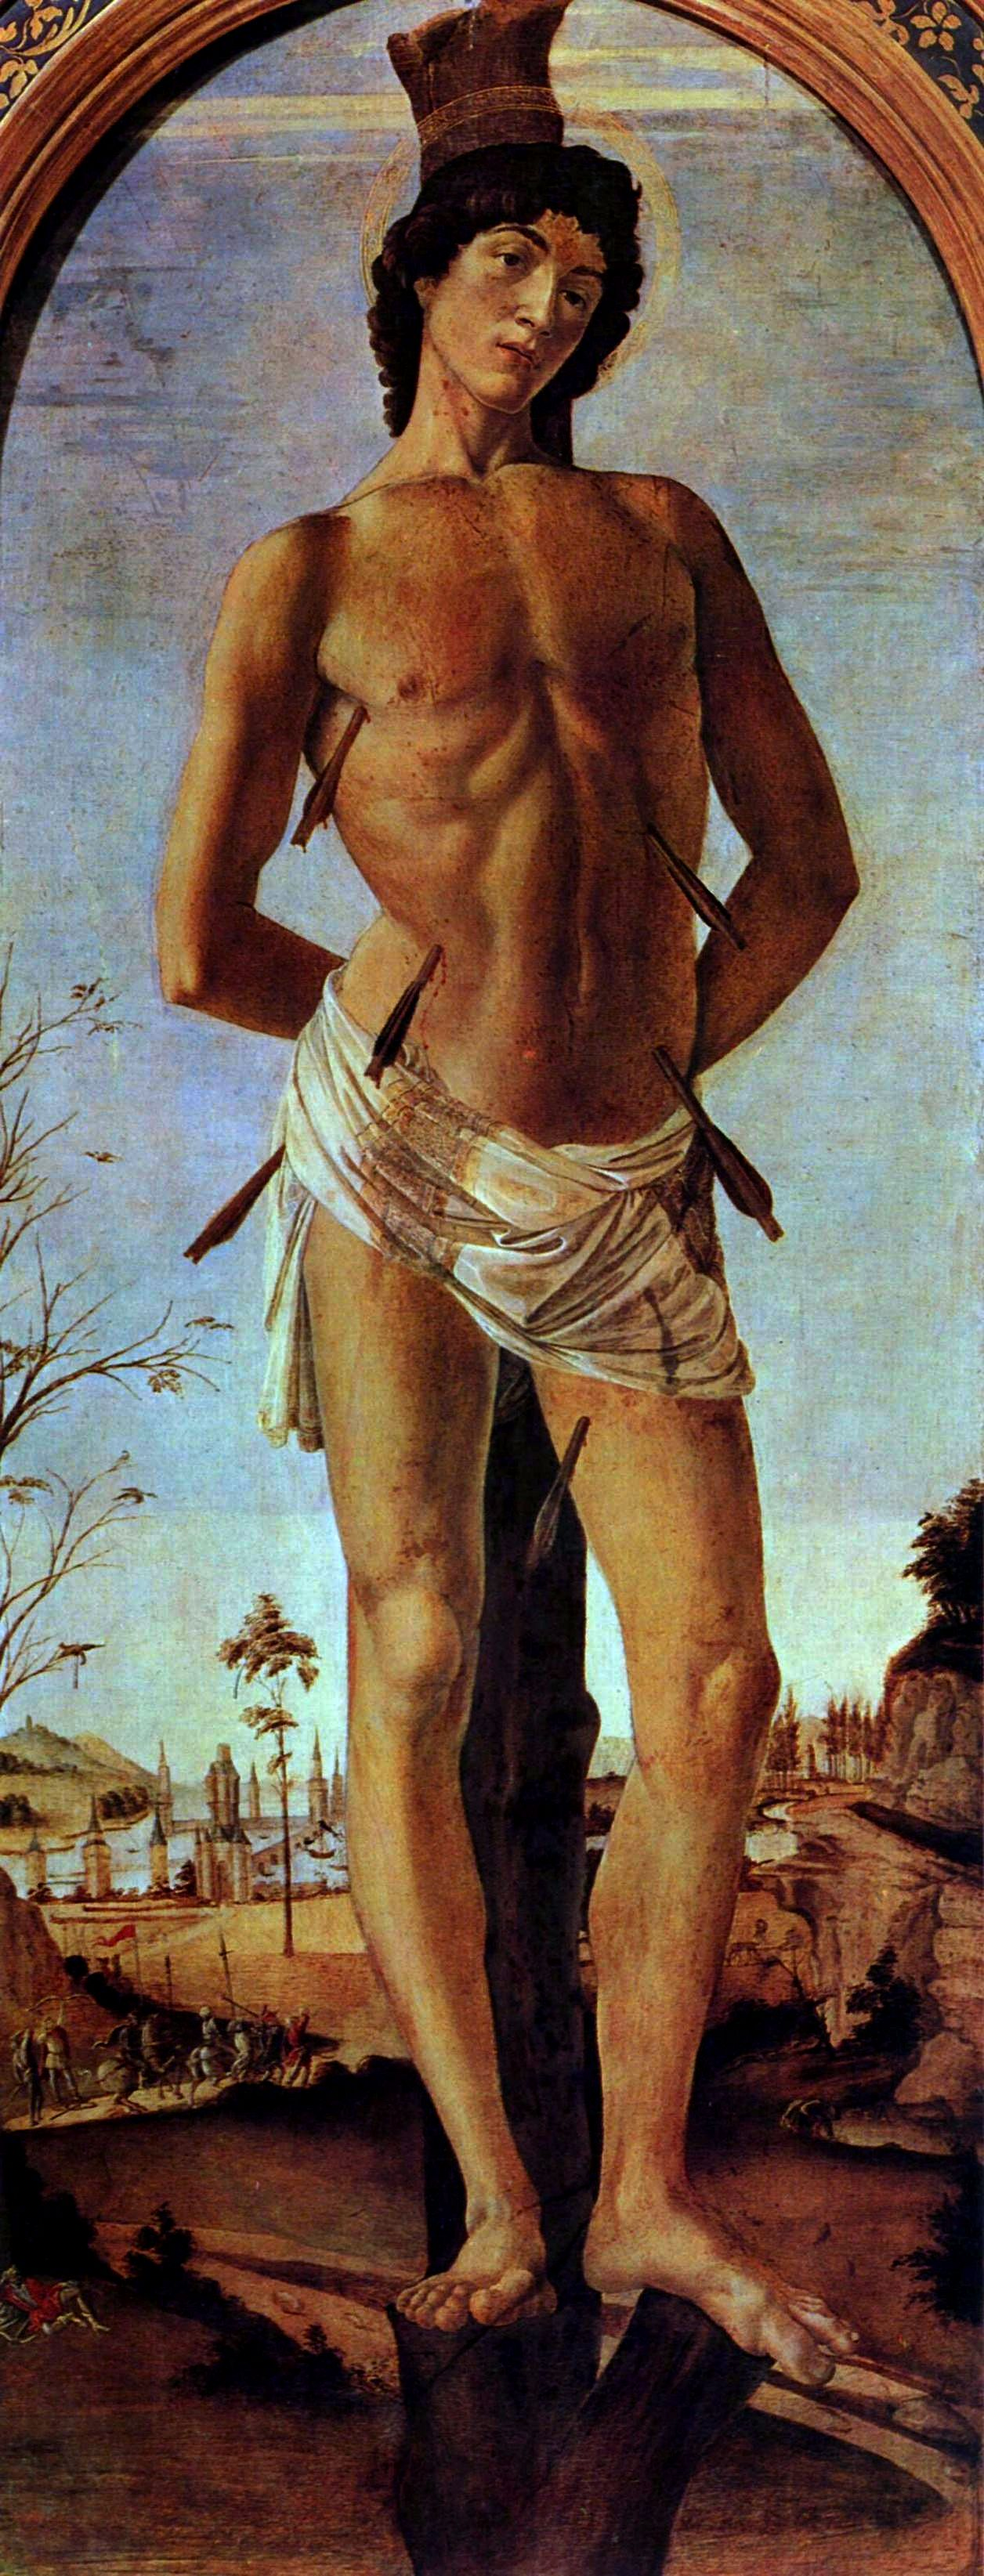 https://upload.wikimedia.org/wikipedia/commons/4/4c/Sandro_Botticelli_054.jpg